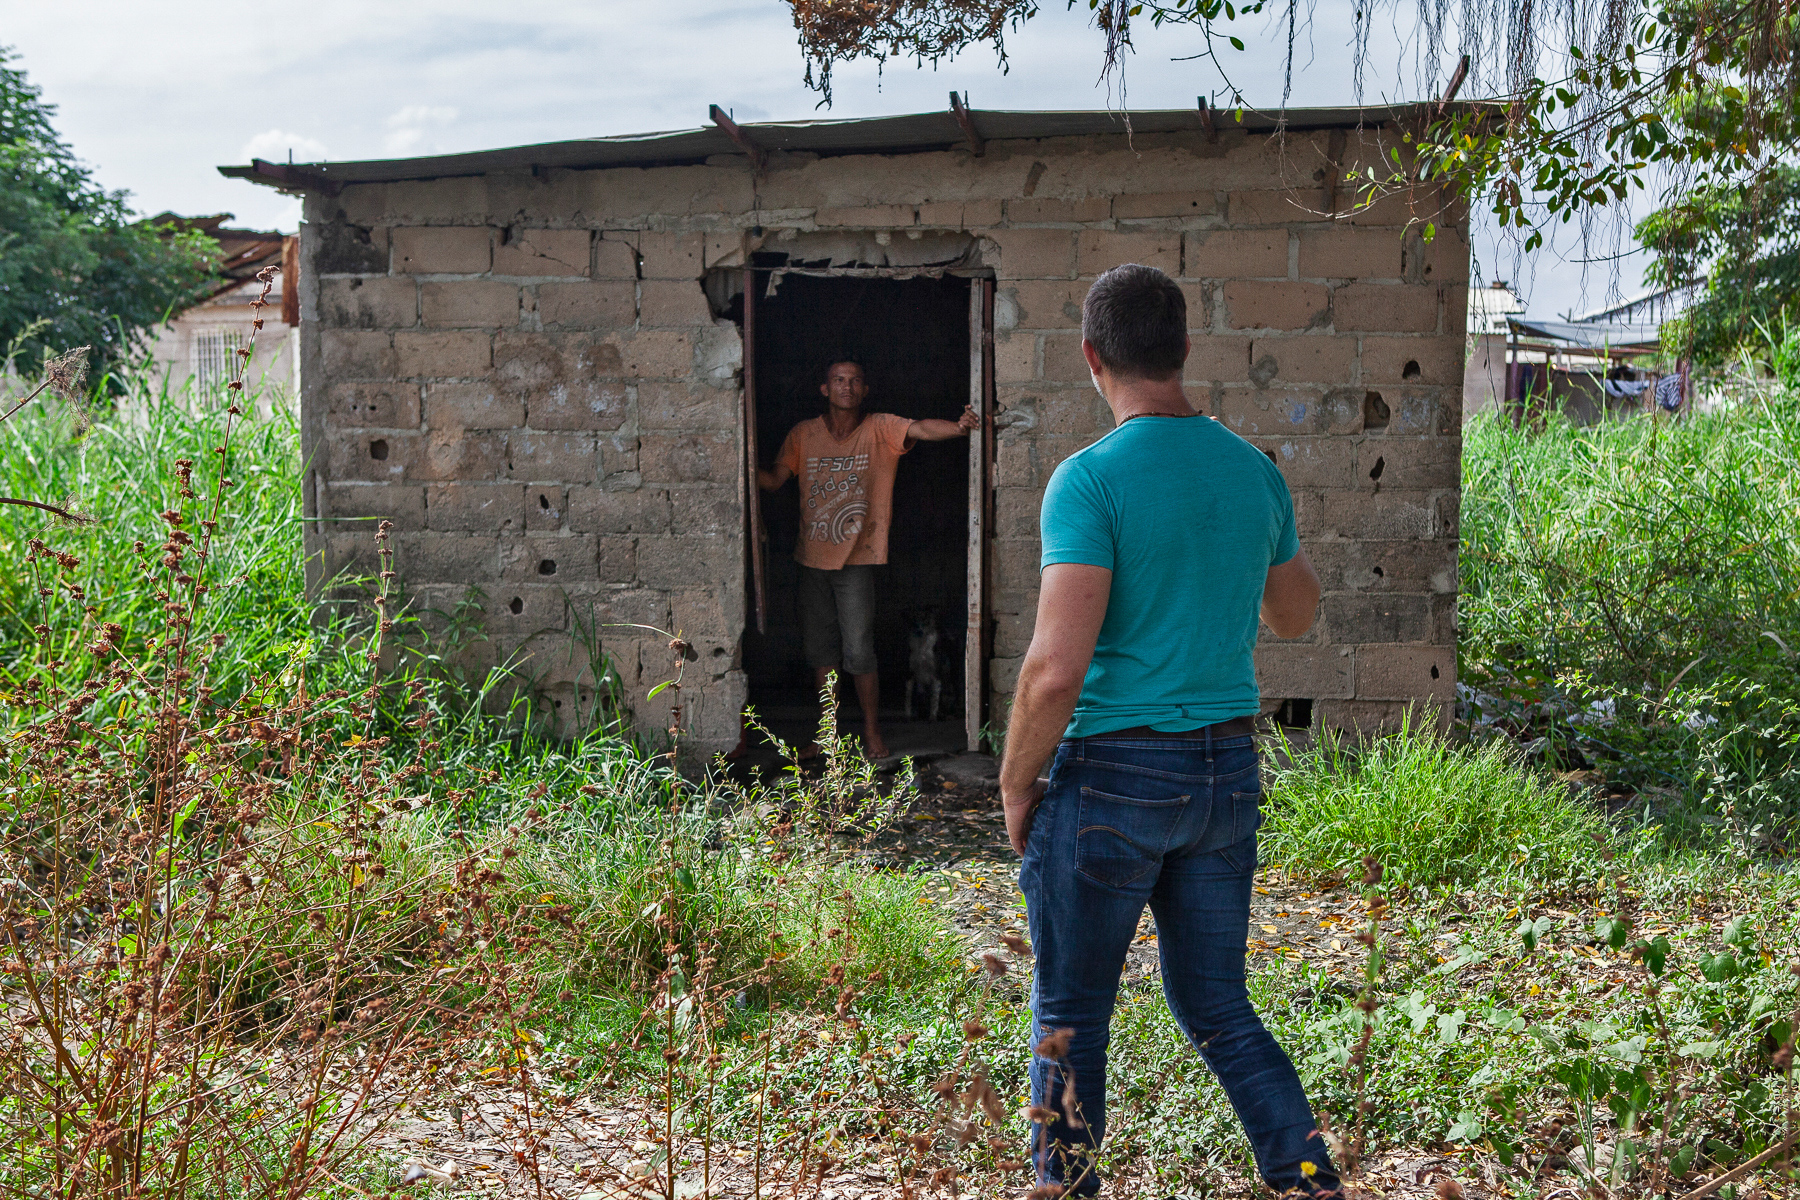 Factor-H and Fundación Habitat LUZ from Maracaibo start working together